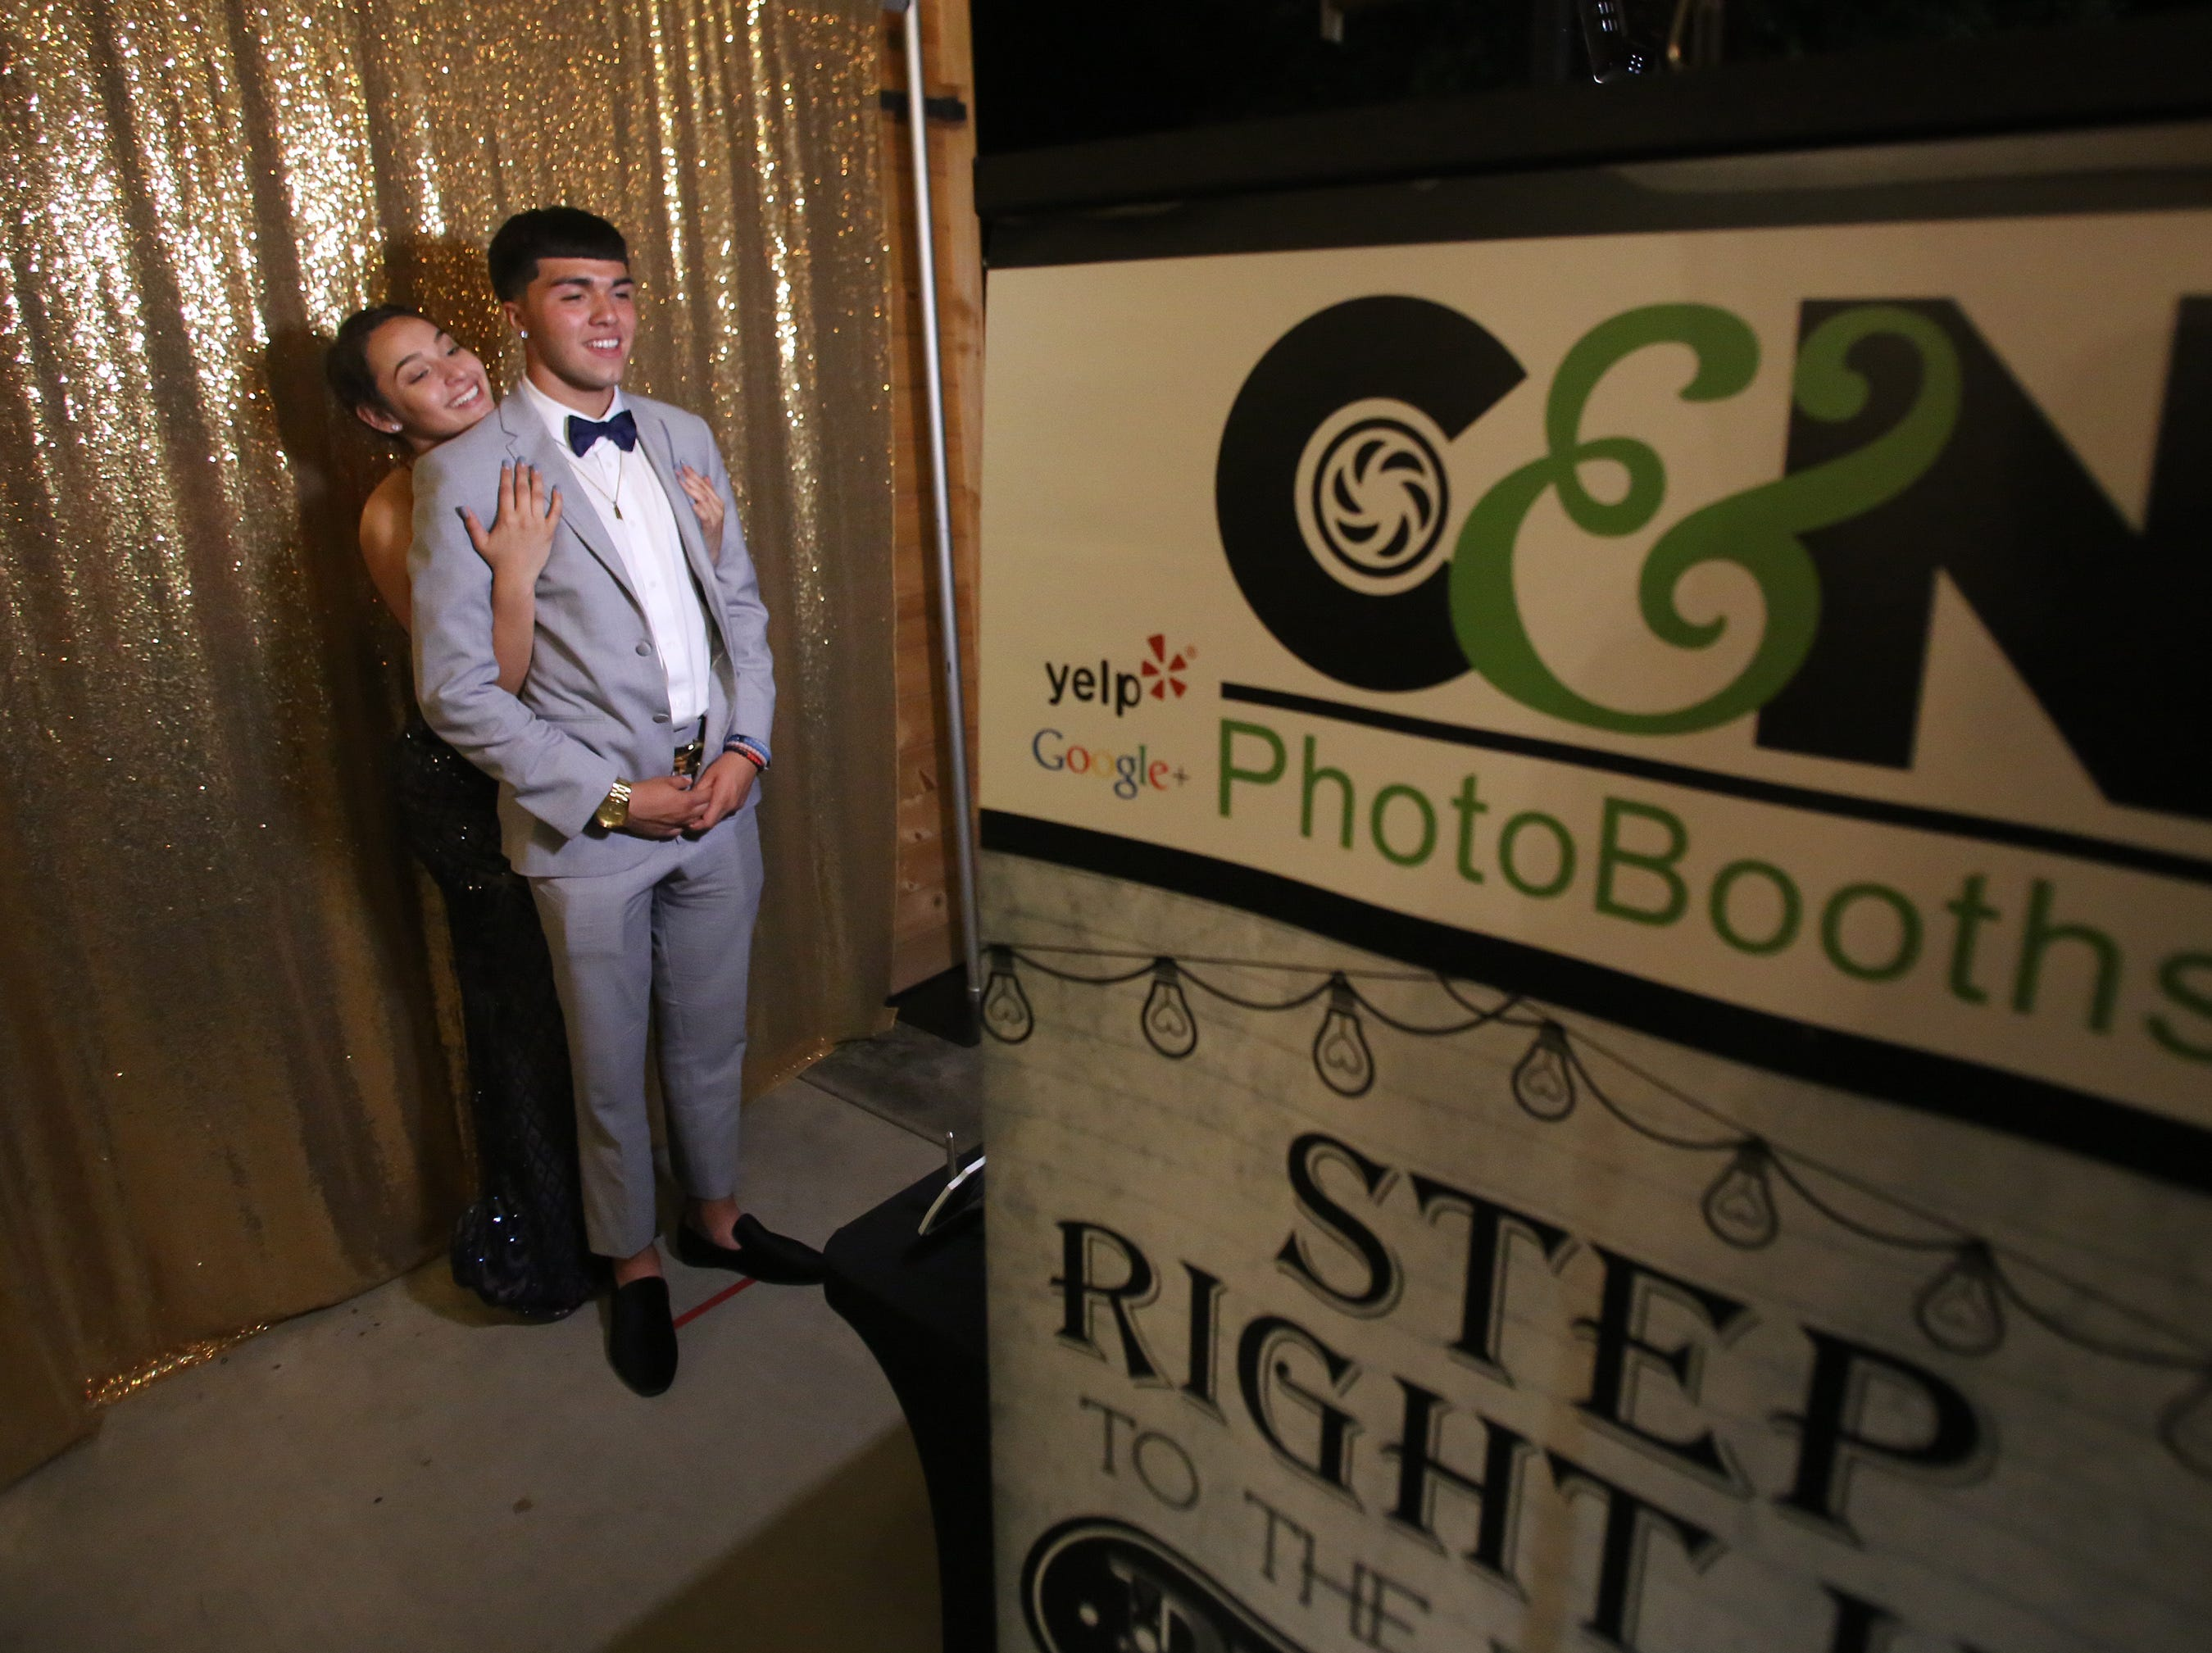 Josiah Martinez and Jill Nelson have fun at the photo booth during this year's Exeter Union High School prom Saturday, May 4, 2019 in Woodlake, Calif.